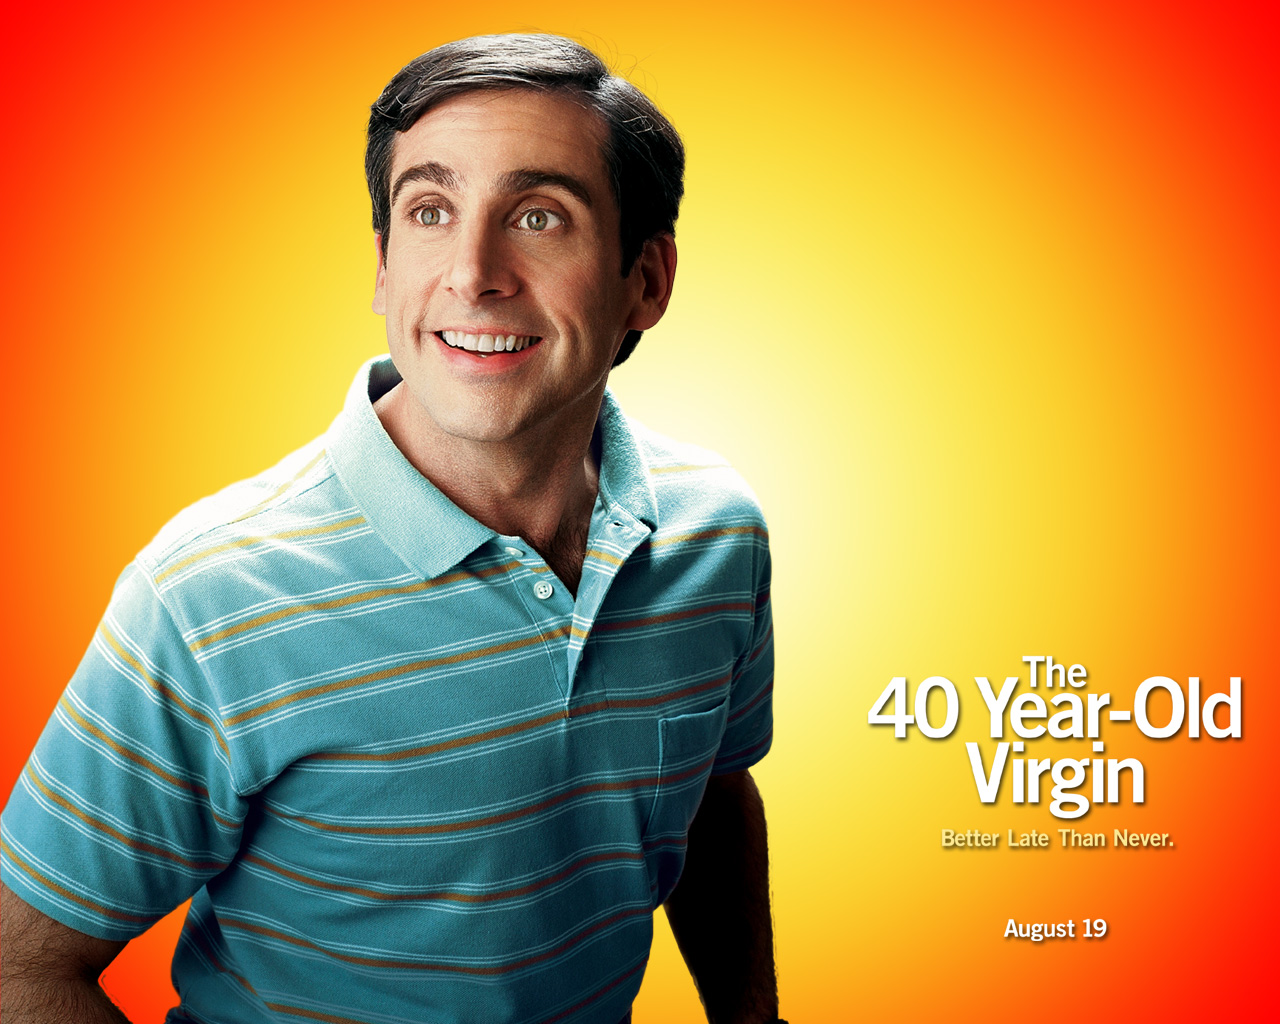 Masculinity Case Studies The 40 Year Old Virgin